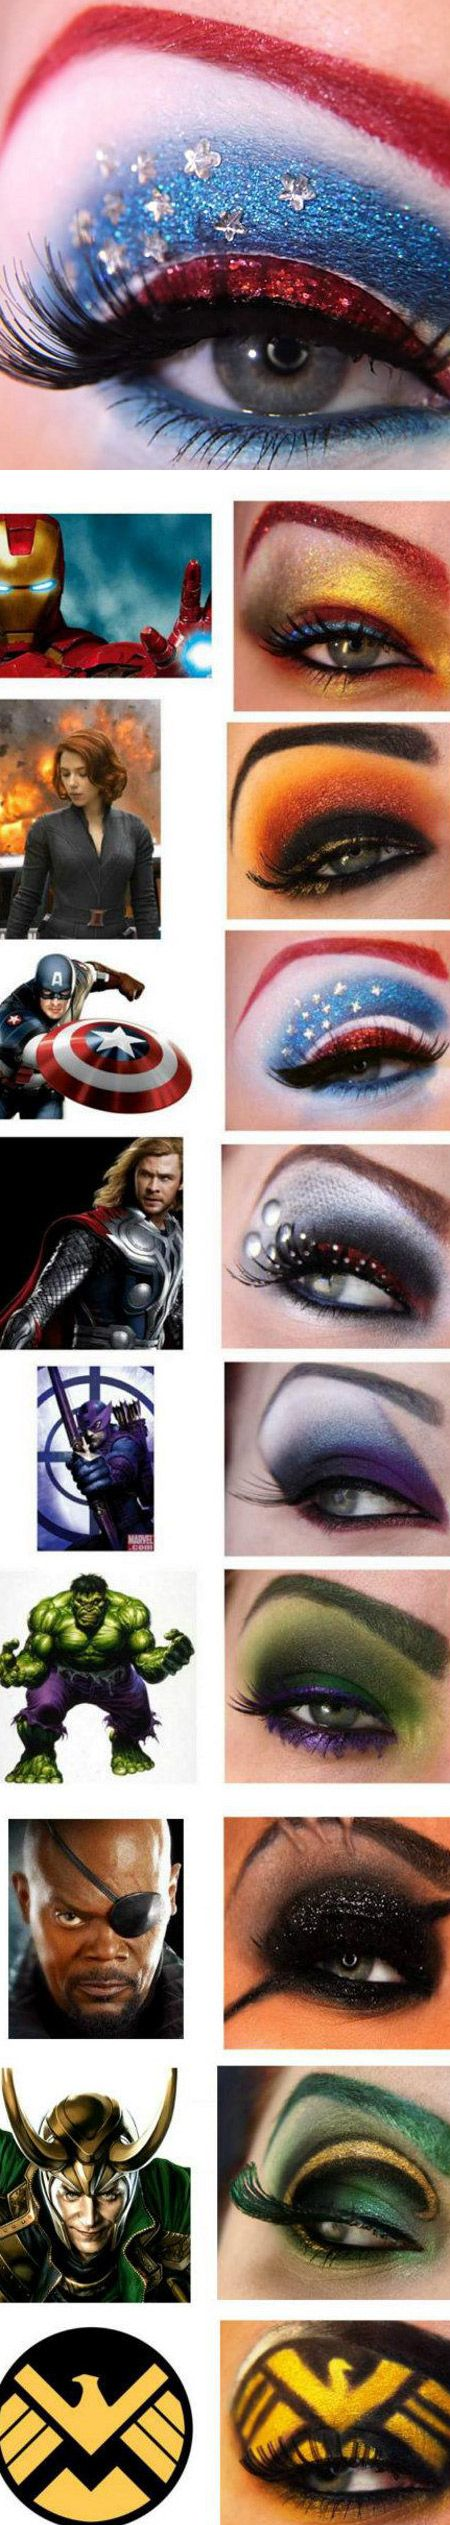 Avengers makeup. I'm definitely trying them all